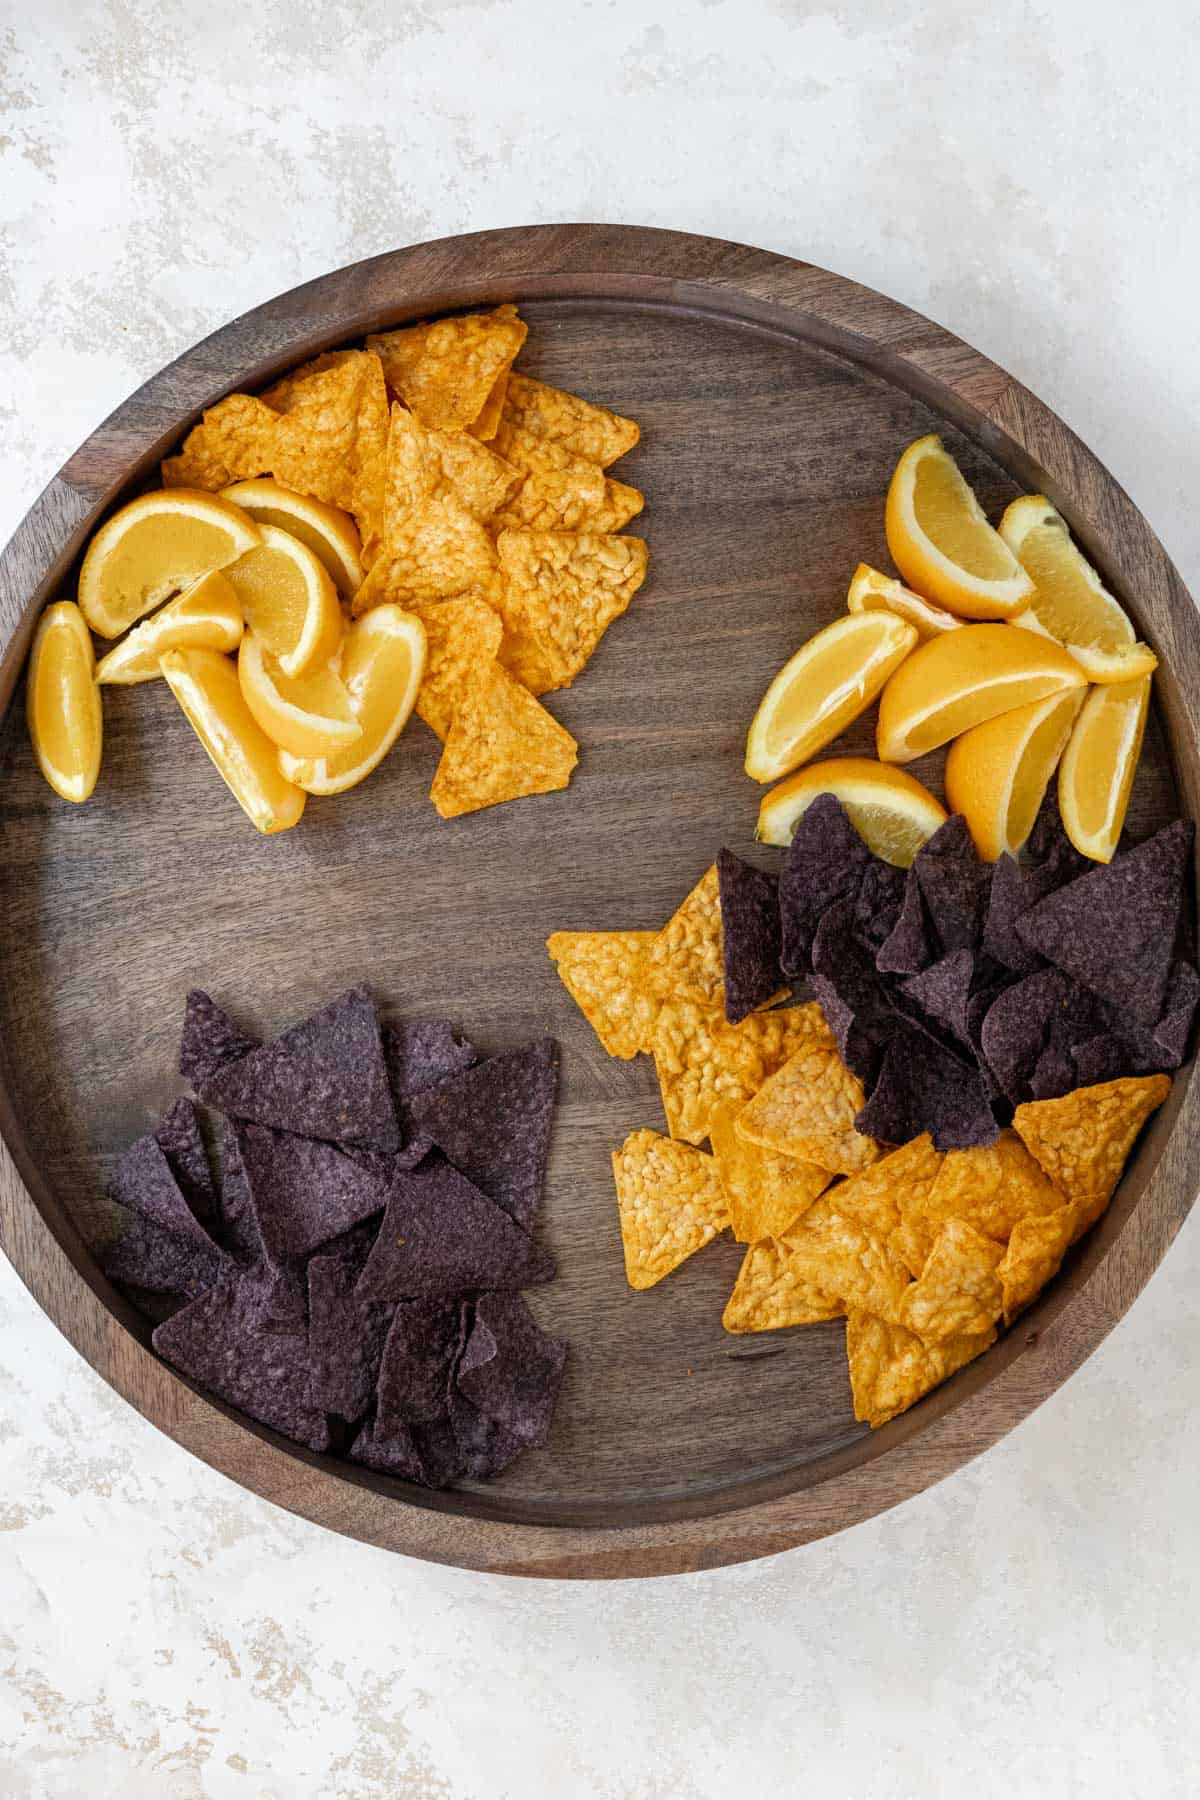 Orange wedges, blue corn tortilla chips, and nacho cheese tortilla chips arranged on a wooden board.